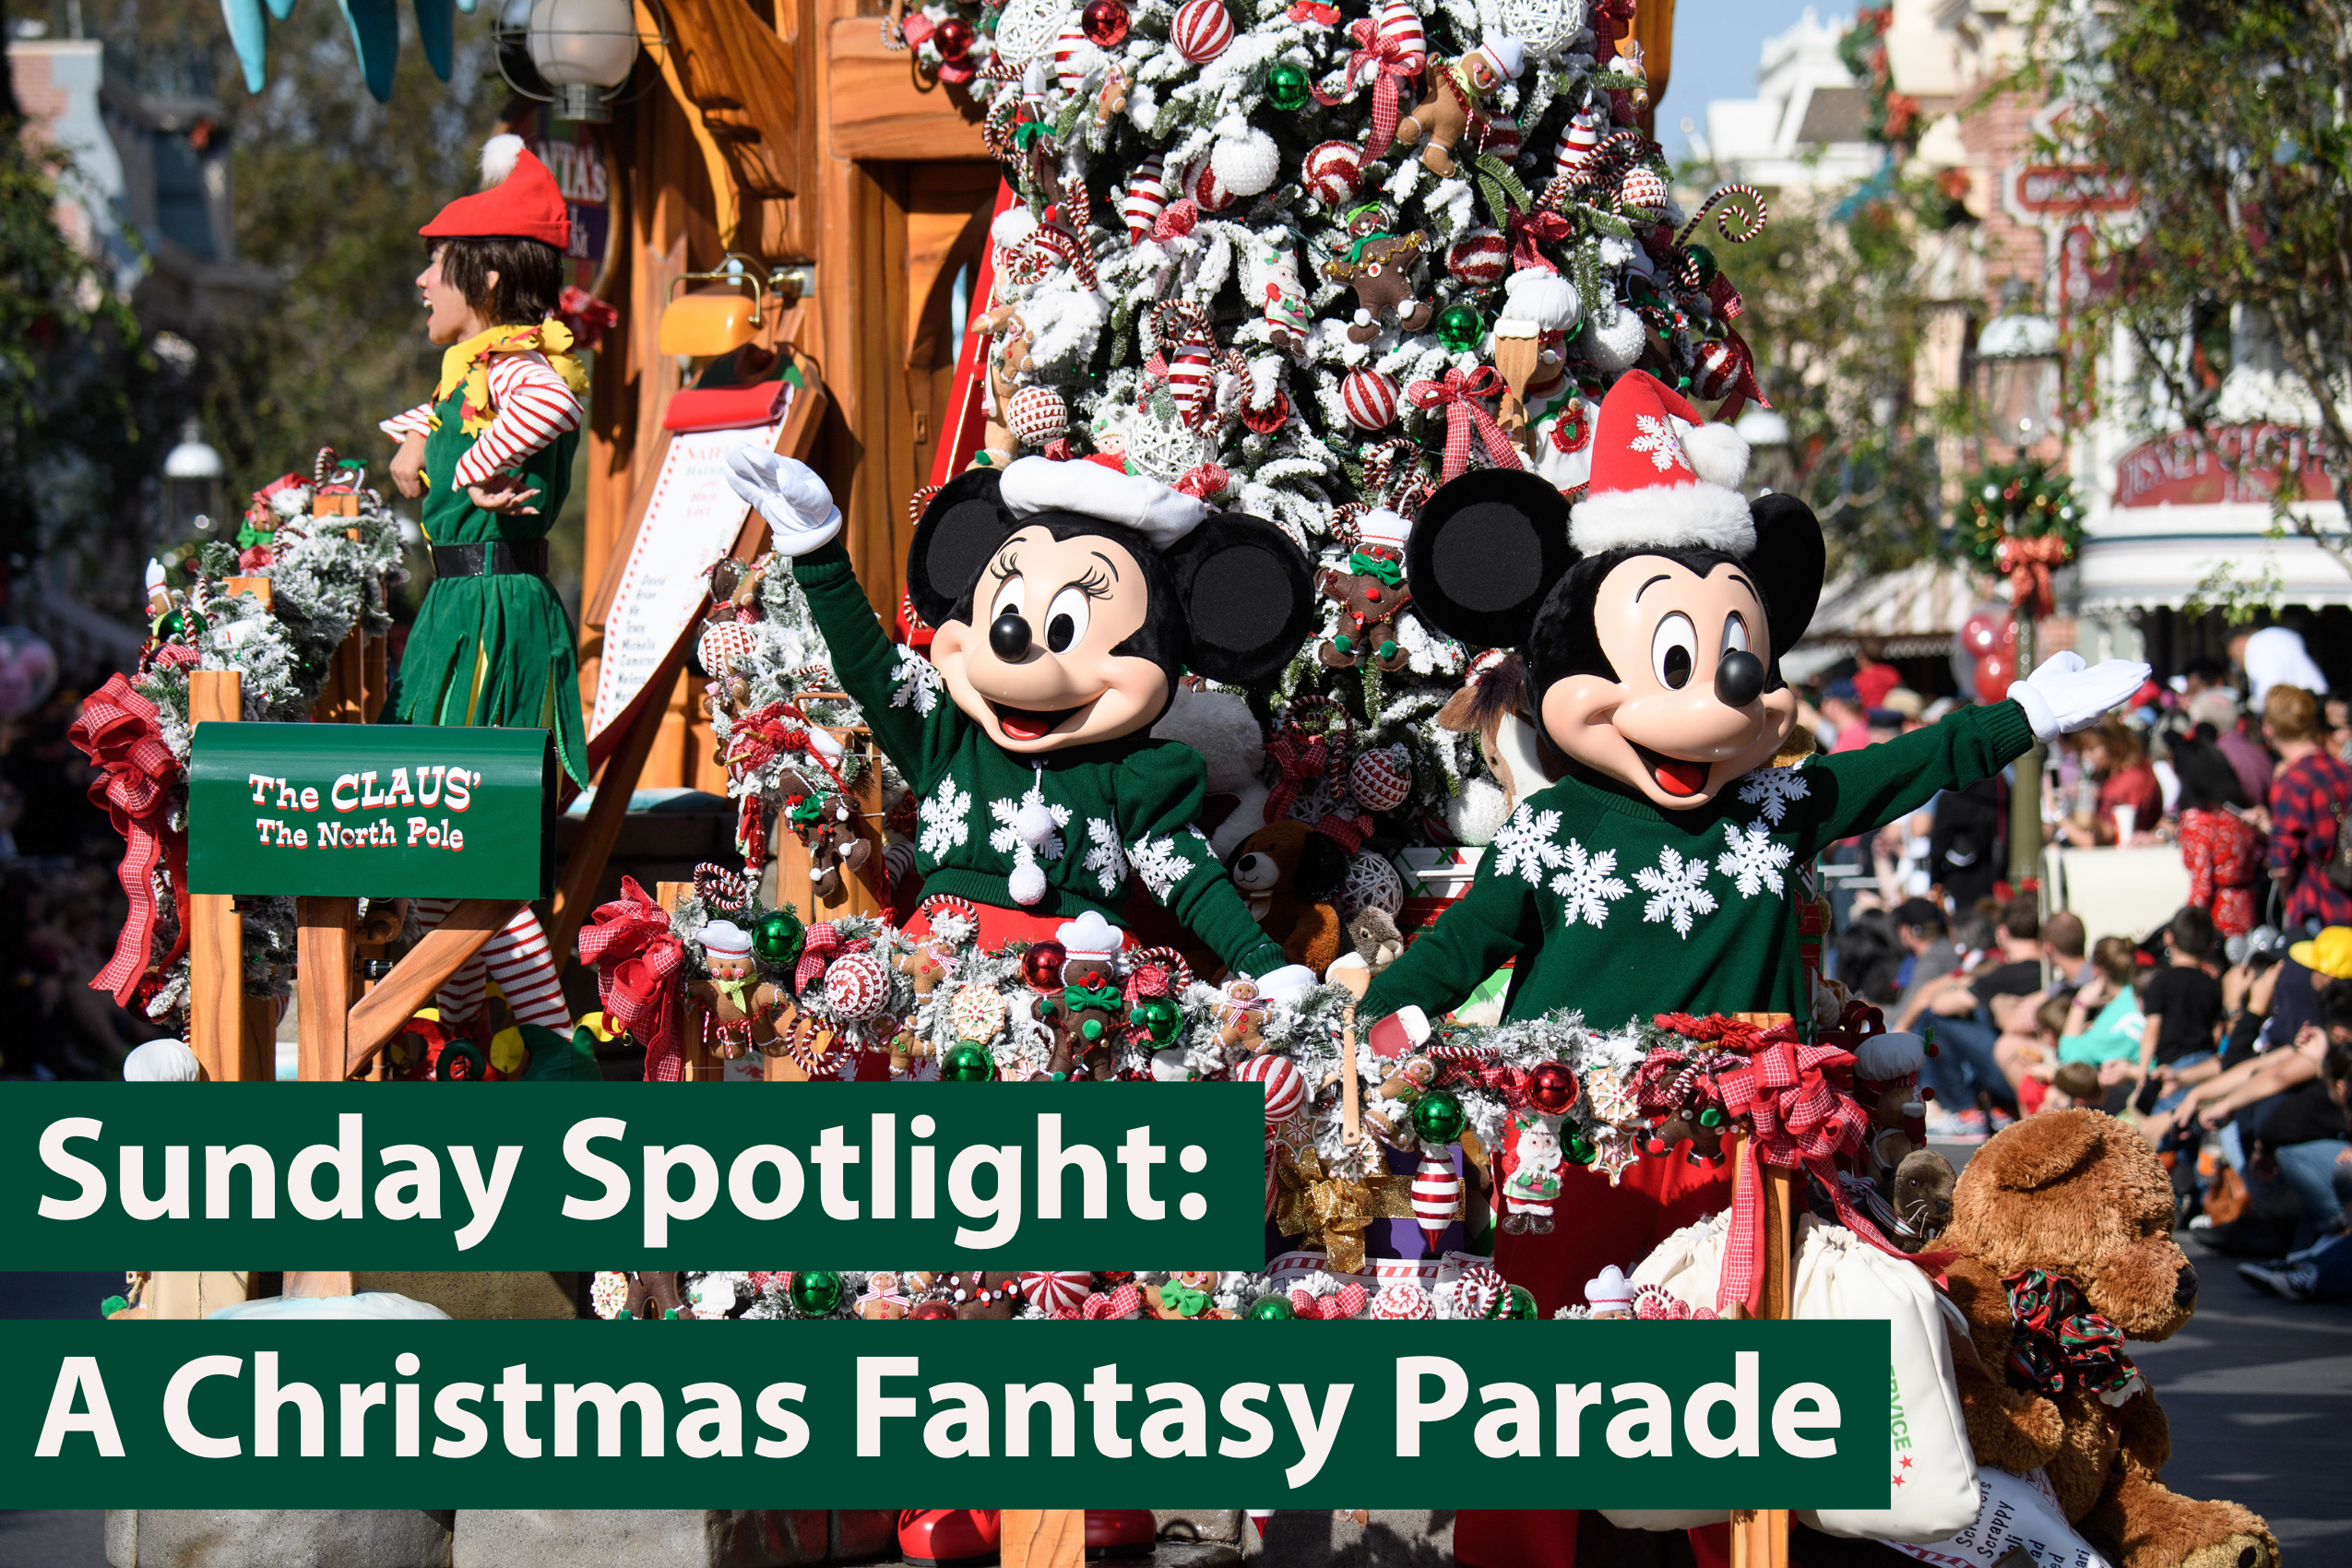 Sunday Spotlight: A Christmas Fantasy Parade